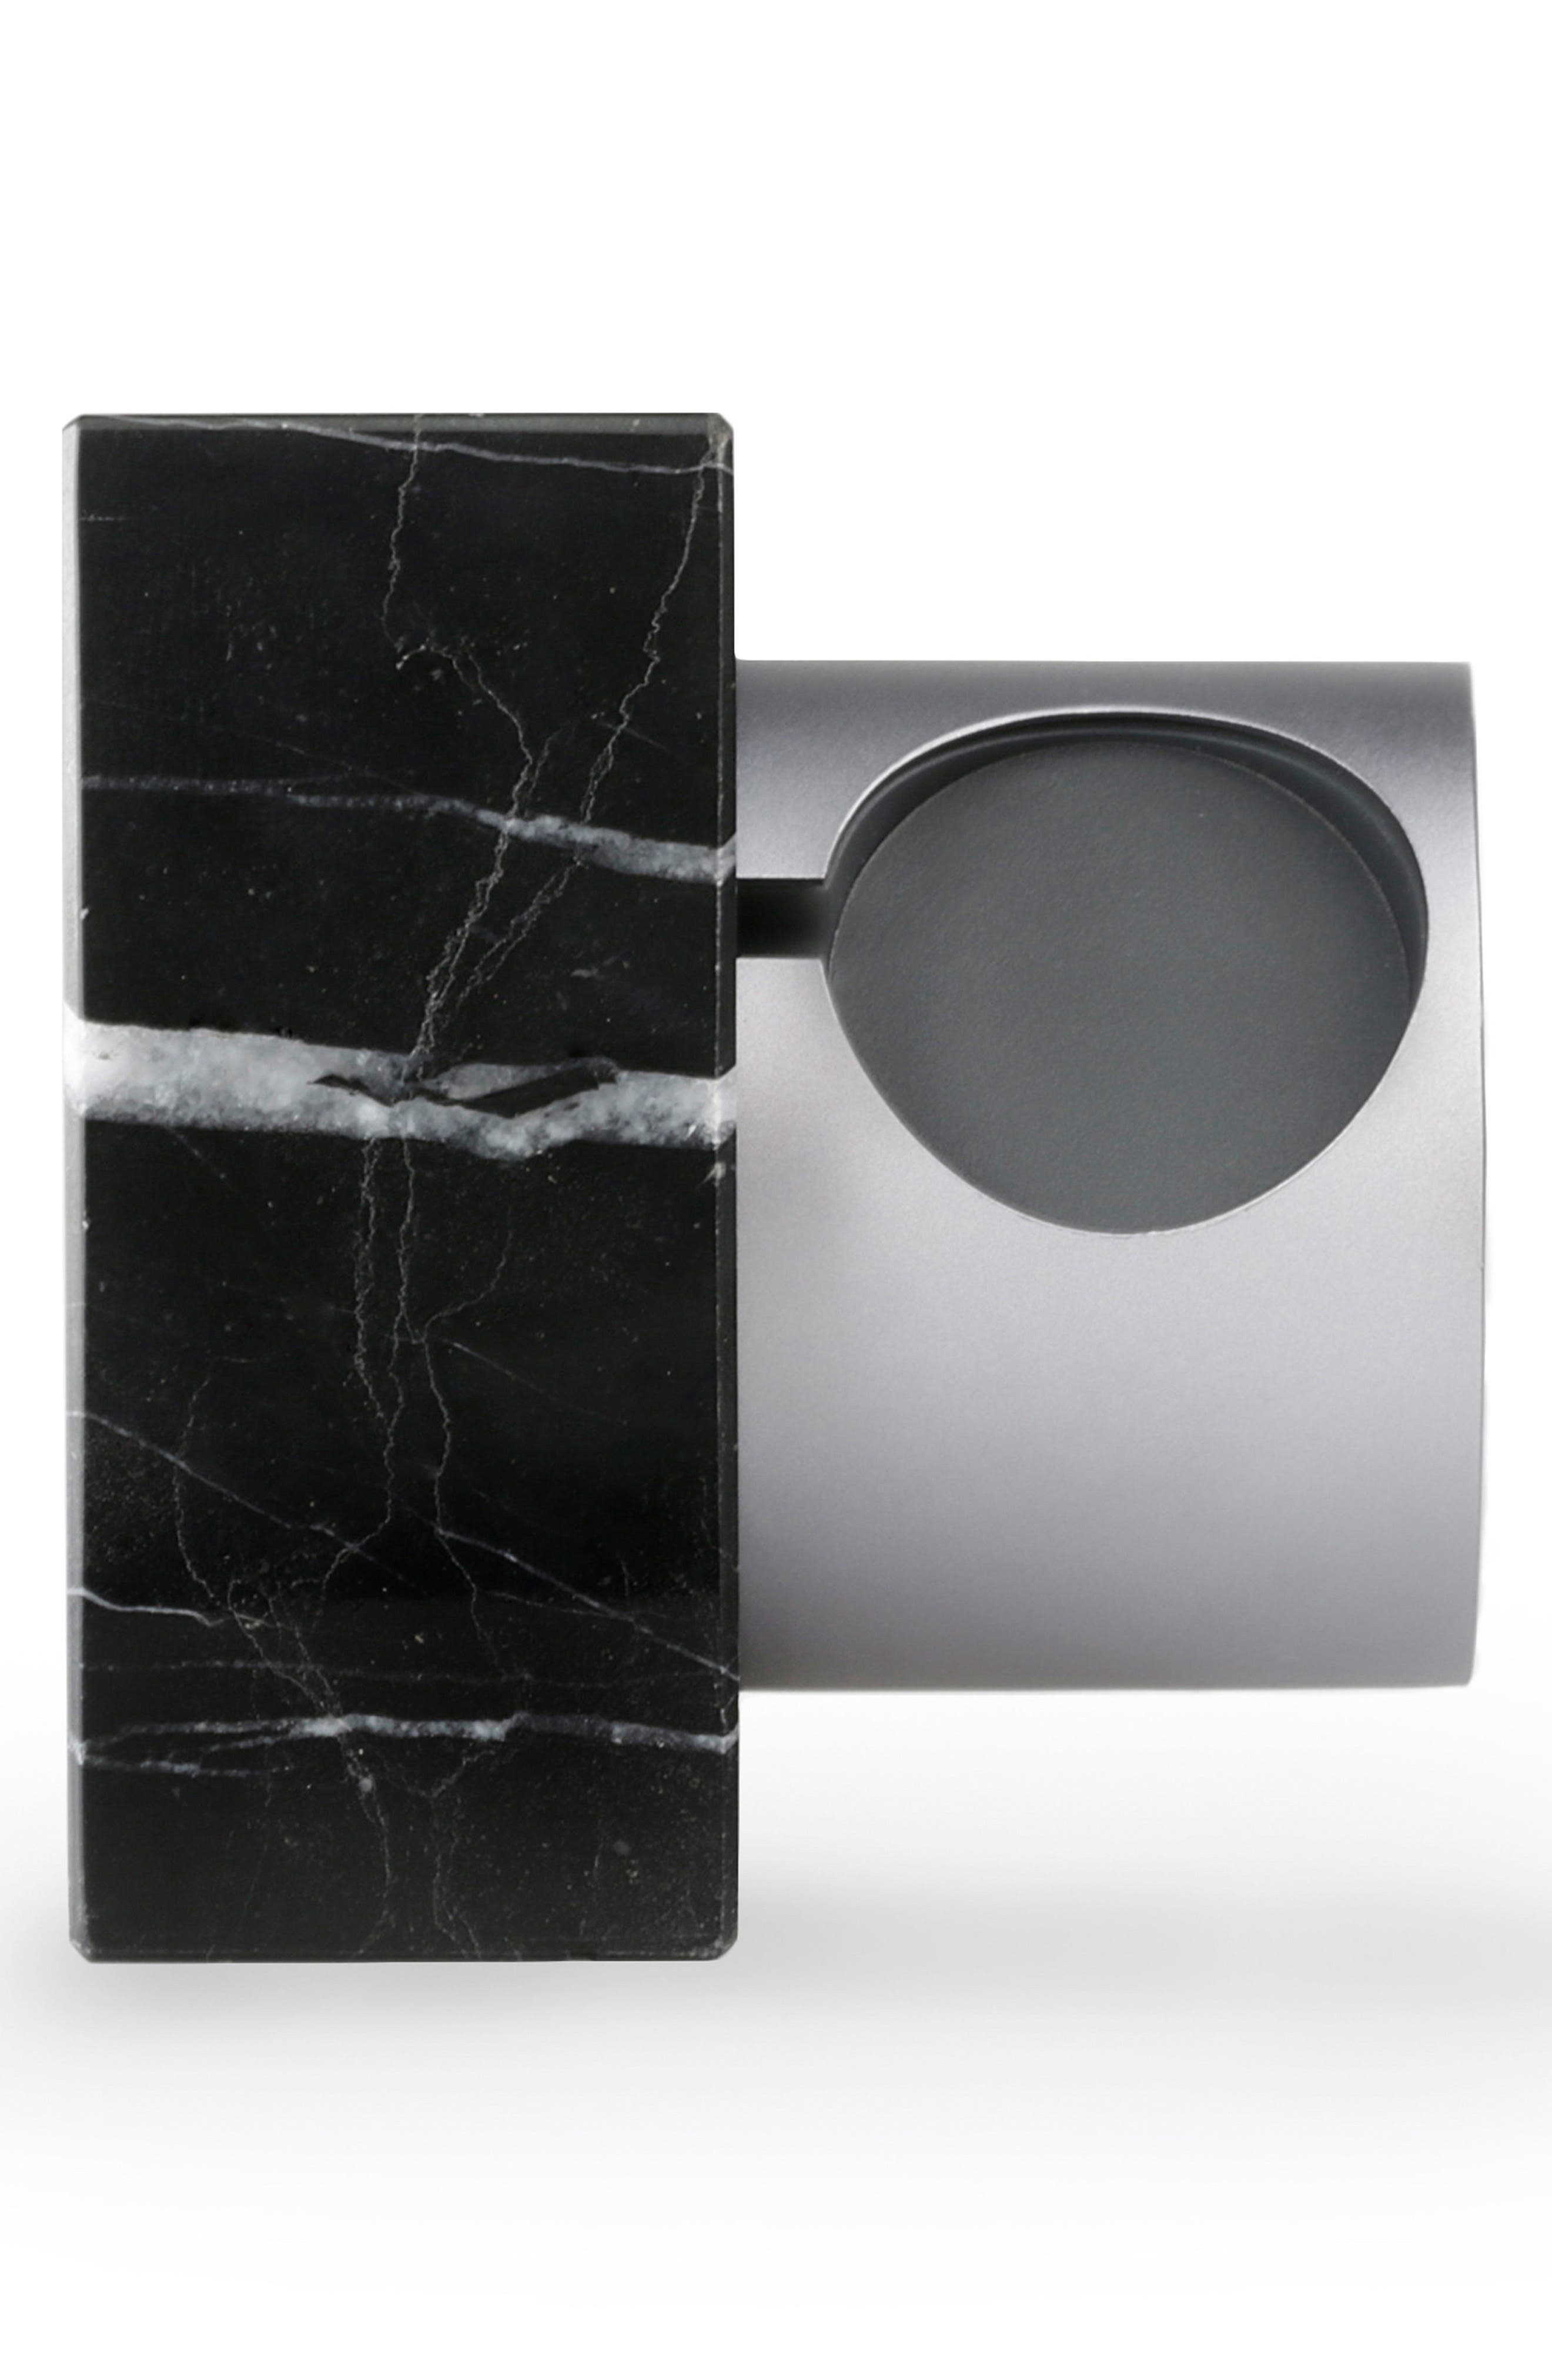 DOCK Marble Apple Watch Dock & Charging Station,                             Main thumbnail 1, color,                             Black Marble